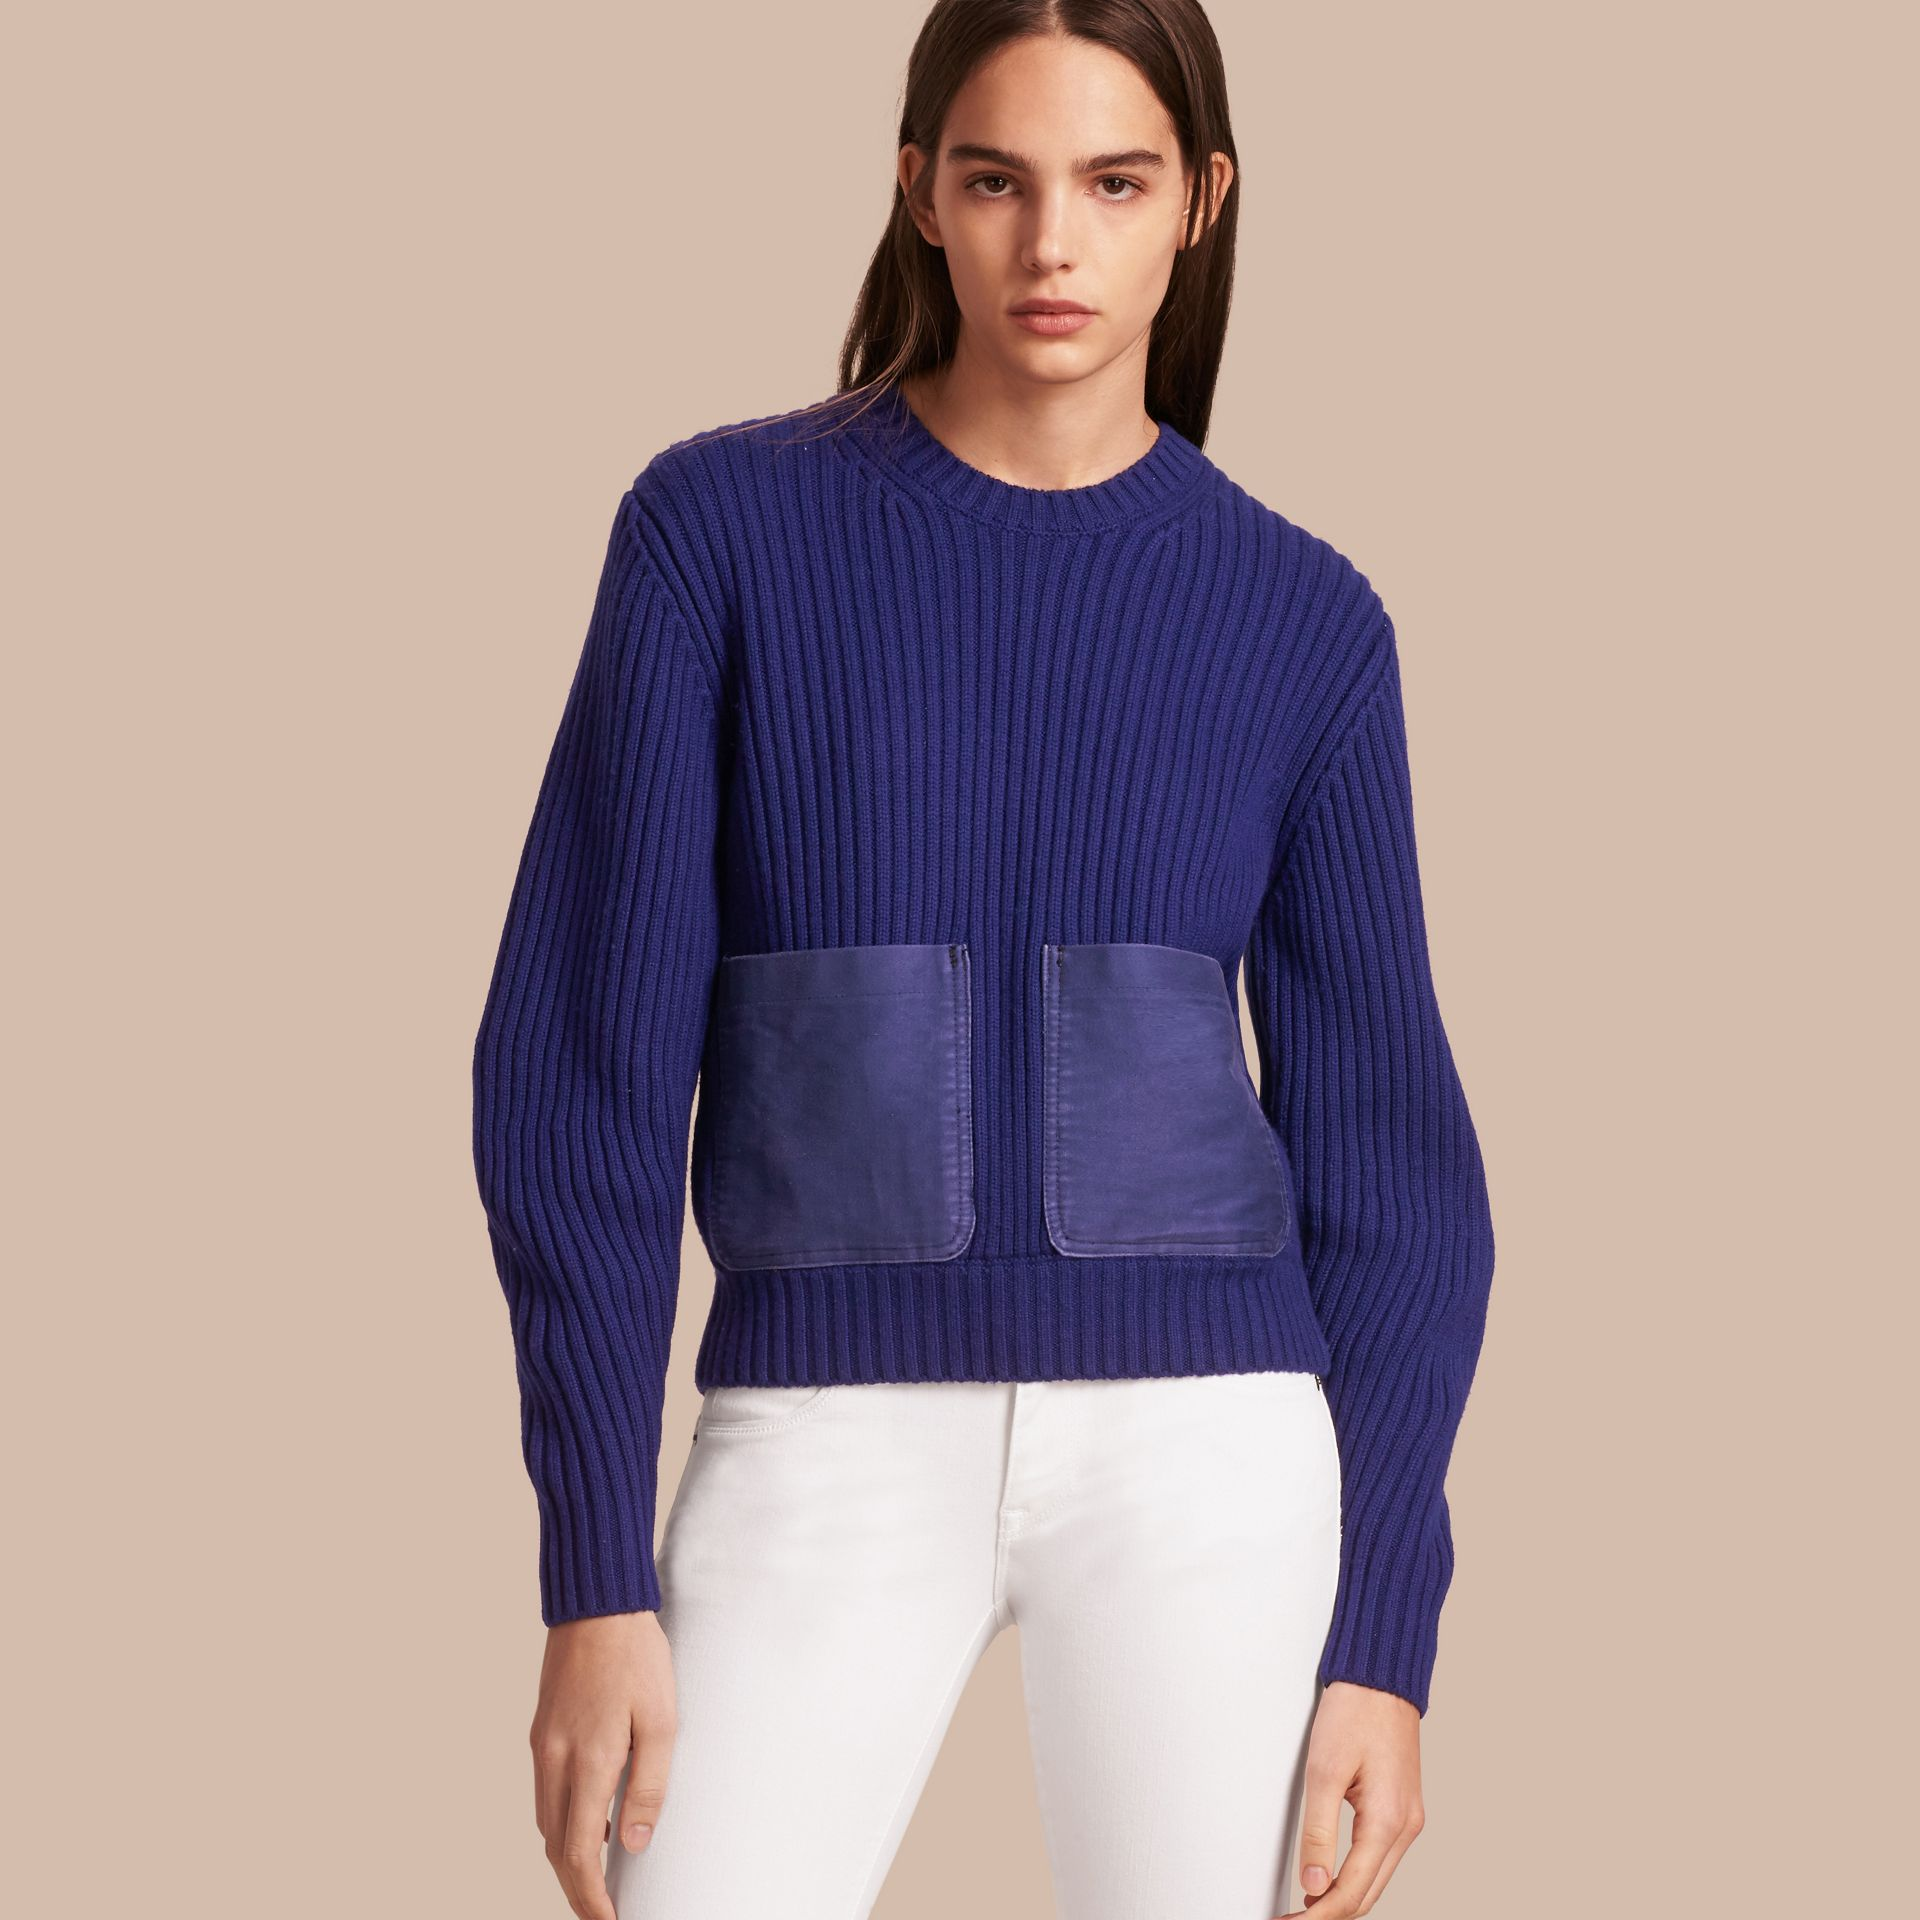 Oversize Pocket Detail Rib Knit Cashmere Cotton Sweater - gallery image 1